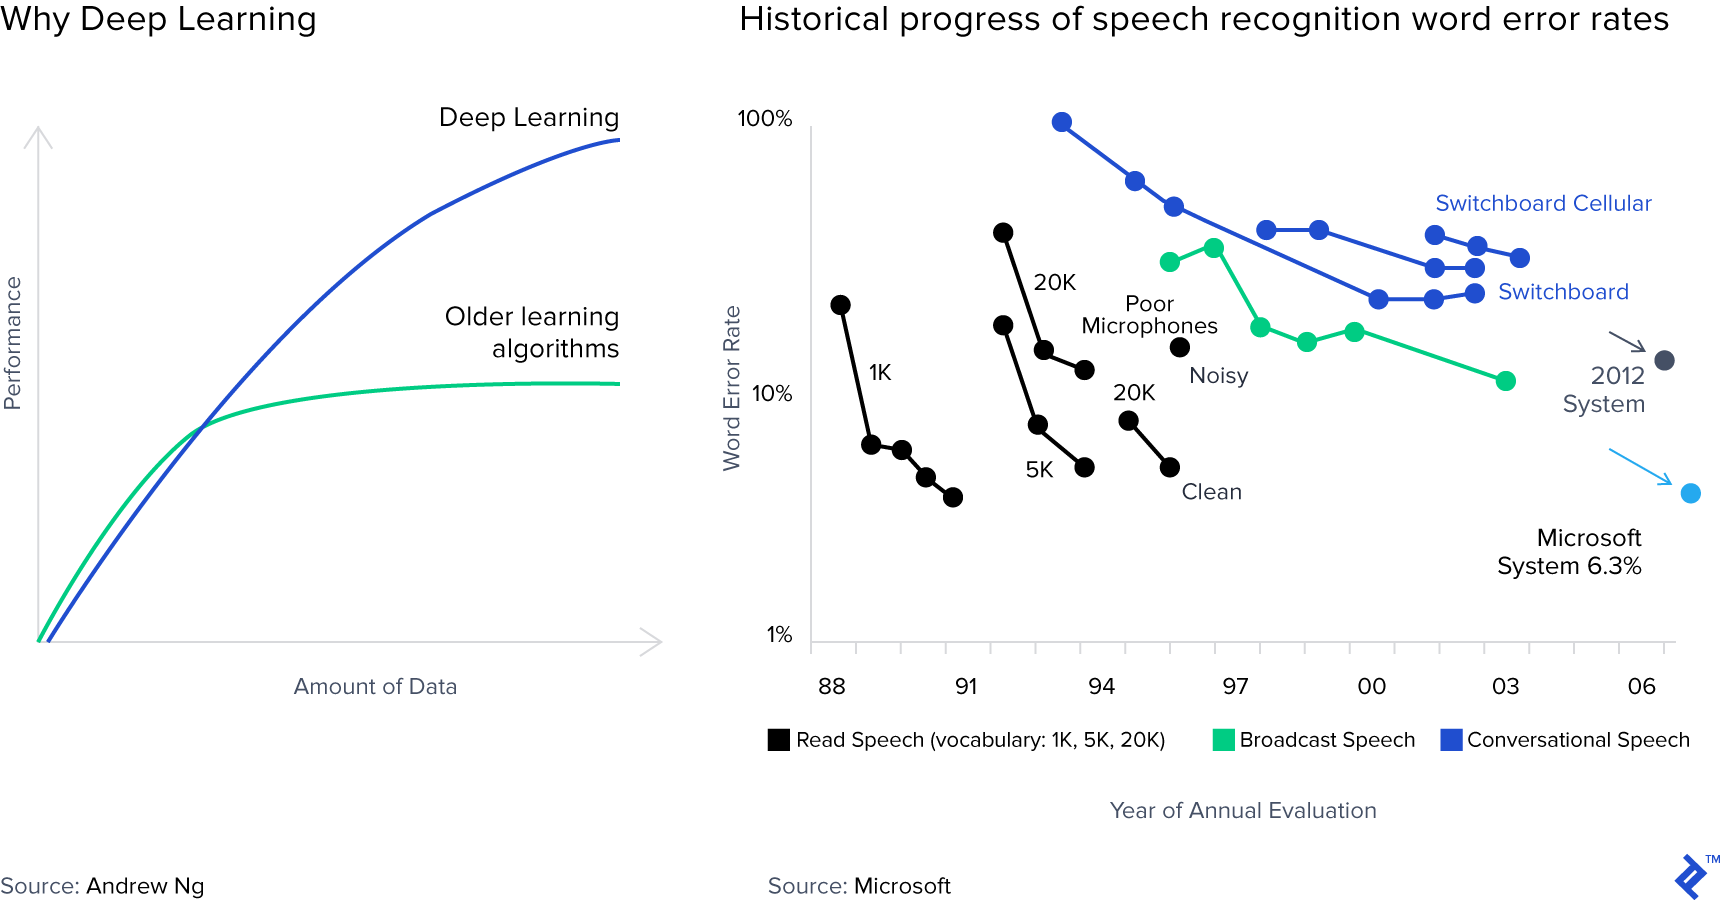 Image with two graphs showing data regarding deep learning and historical progress of speech recognition word error rates.